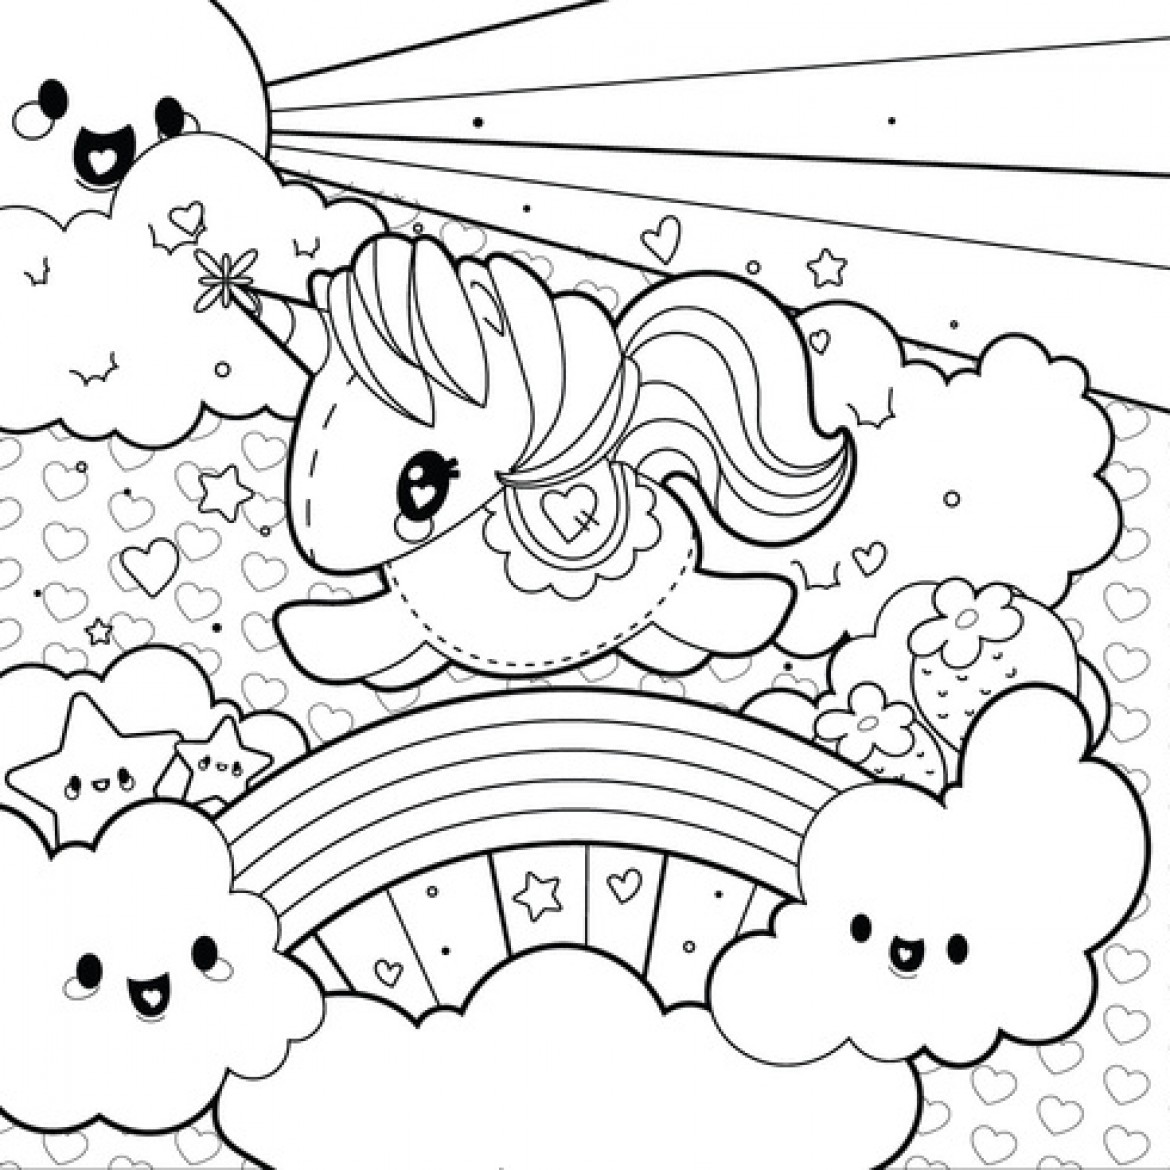 Unicorns And Rainbows Coloring Pages - Coloring Pages 2019